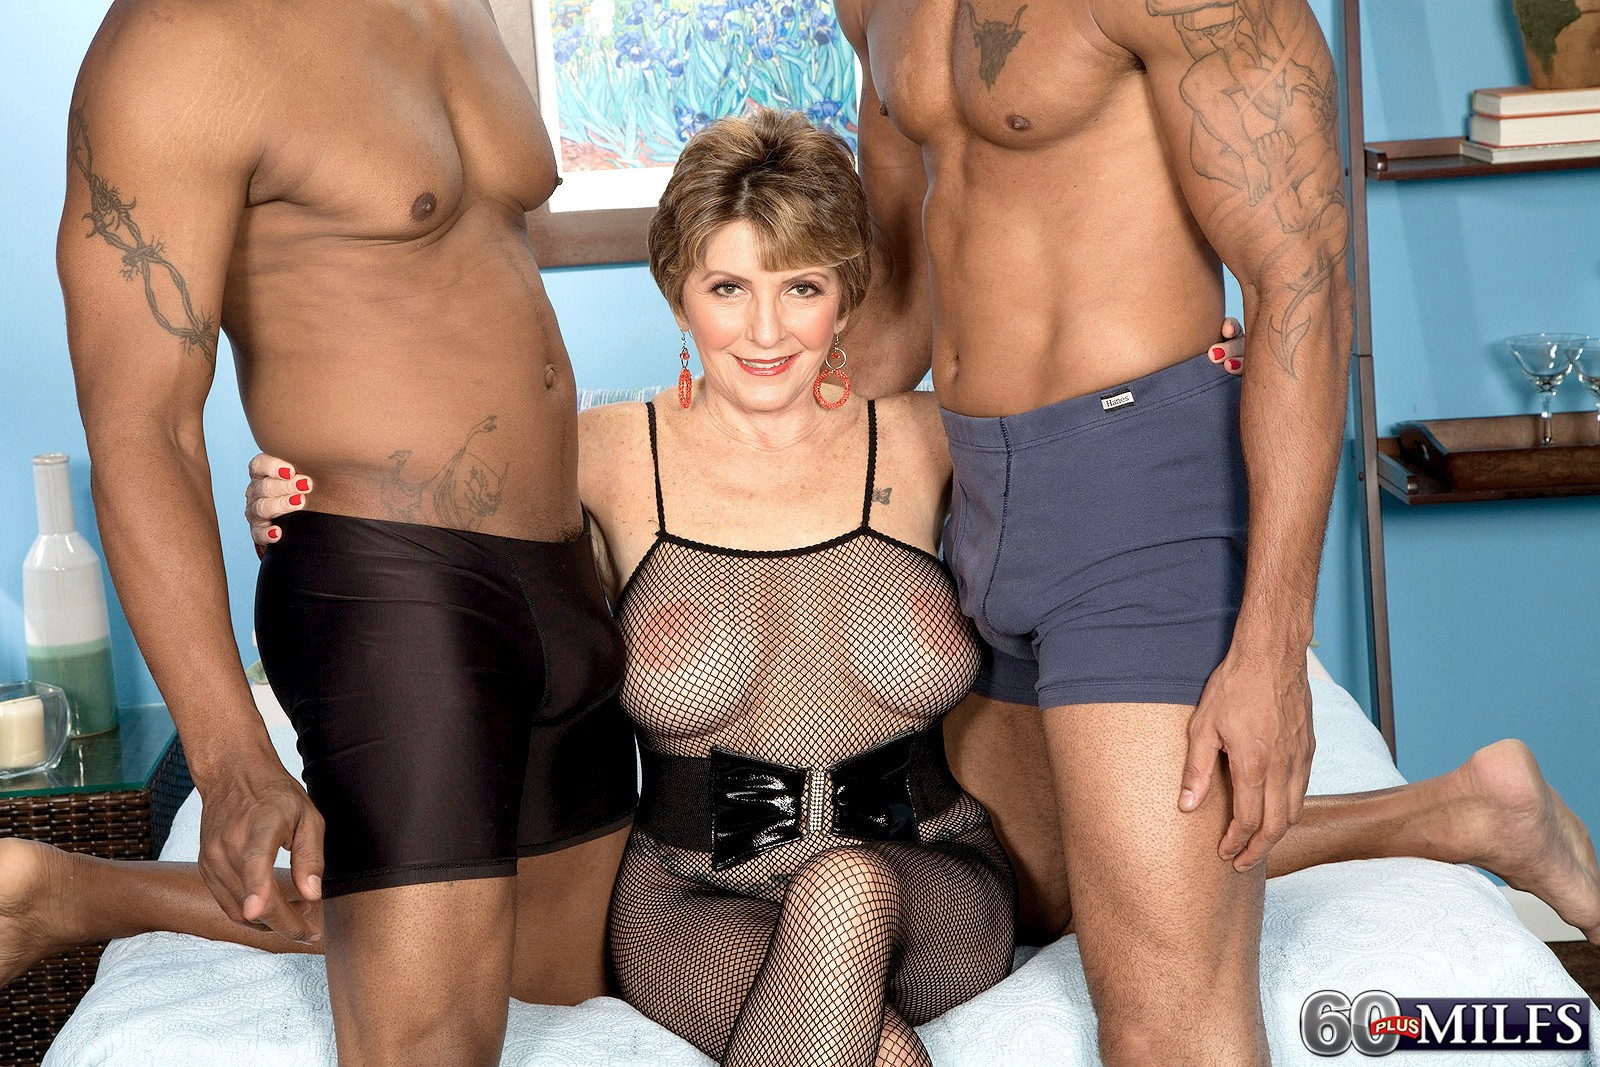 plus milfs two big black cocks for bea cummins bea